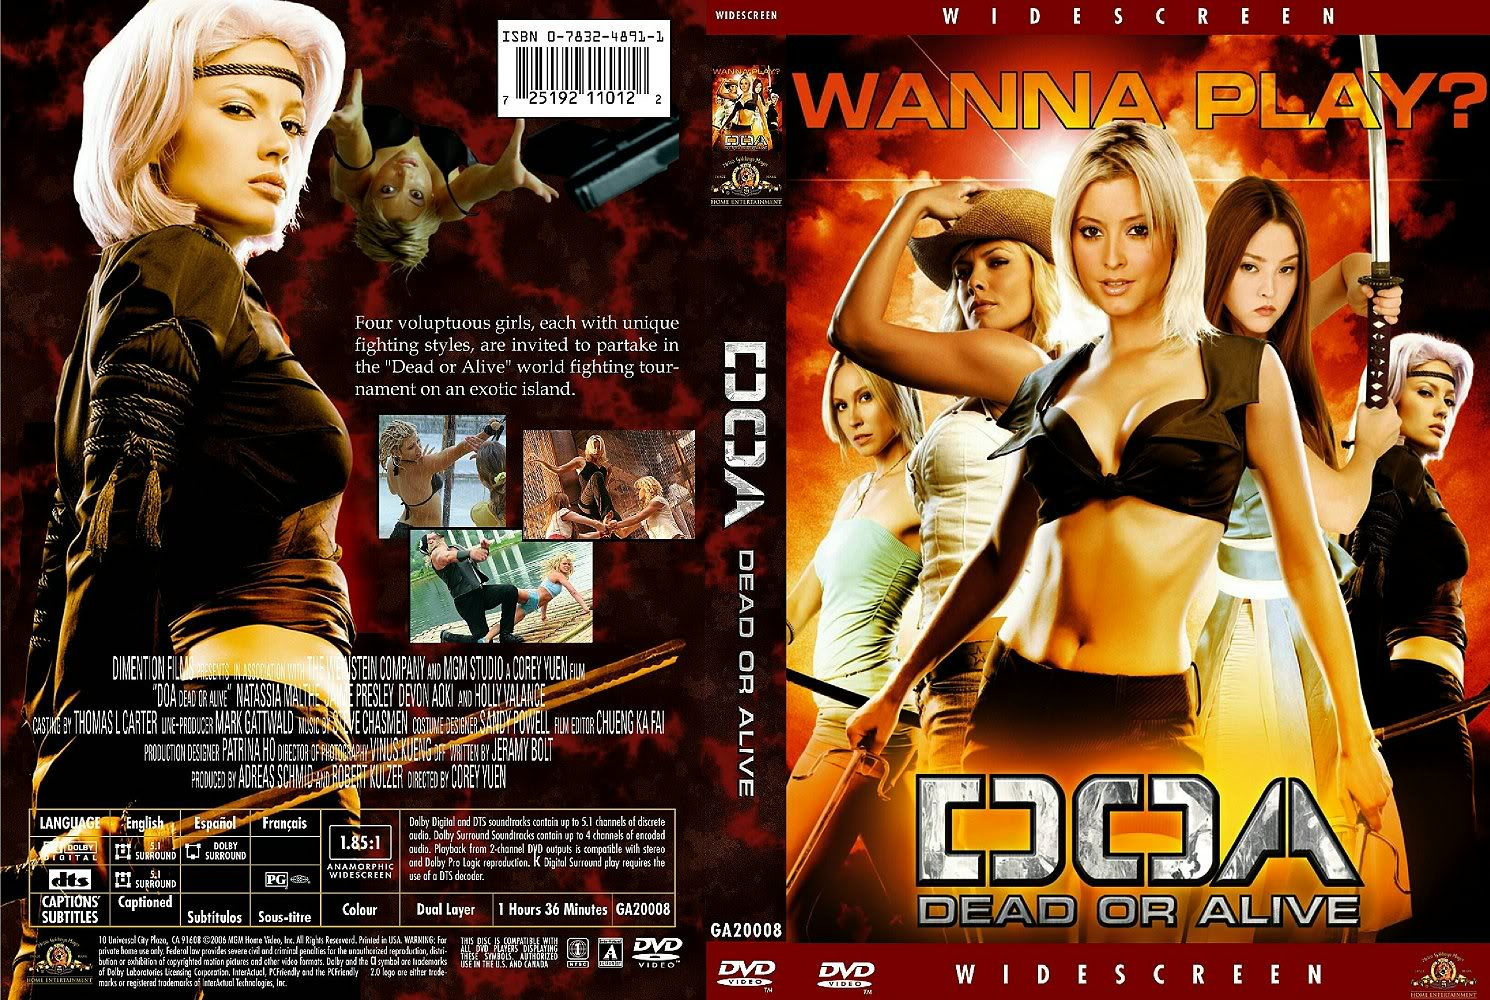 Doa movie wallpaper